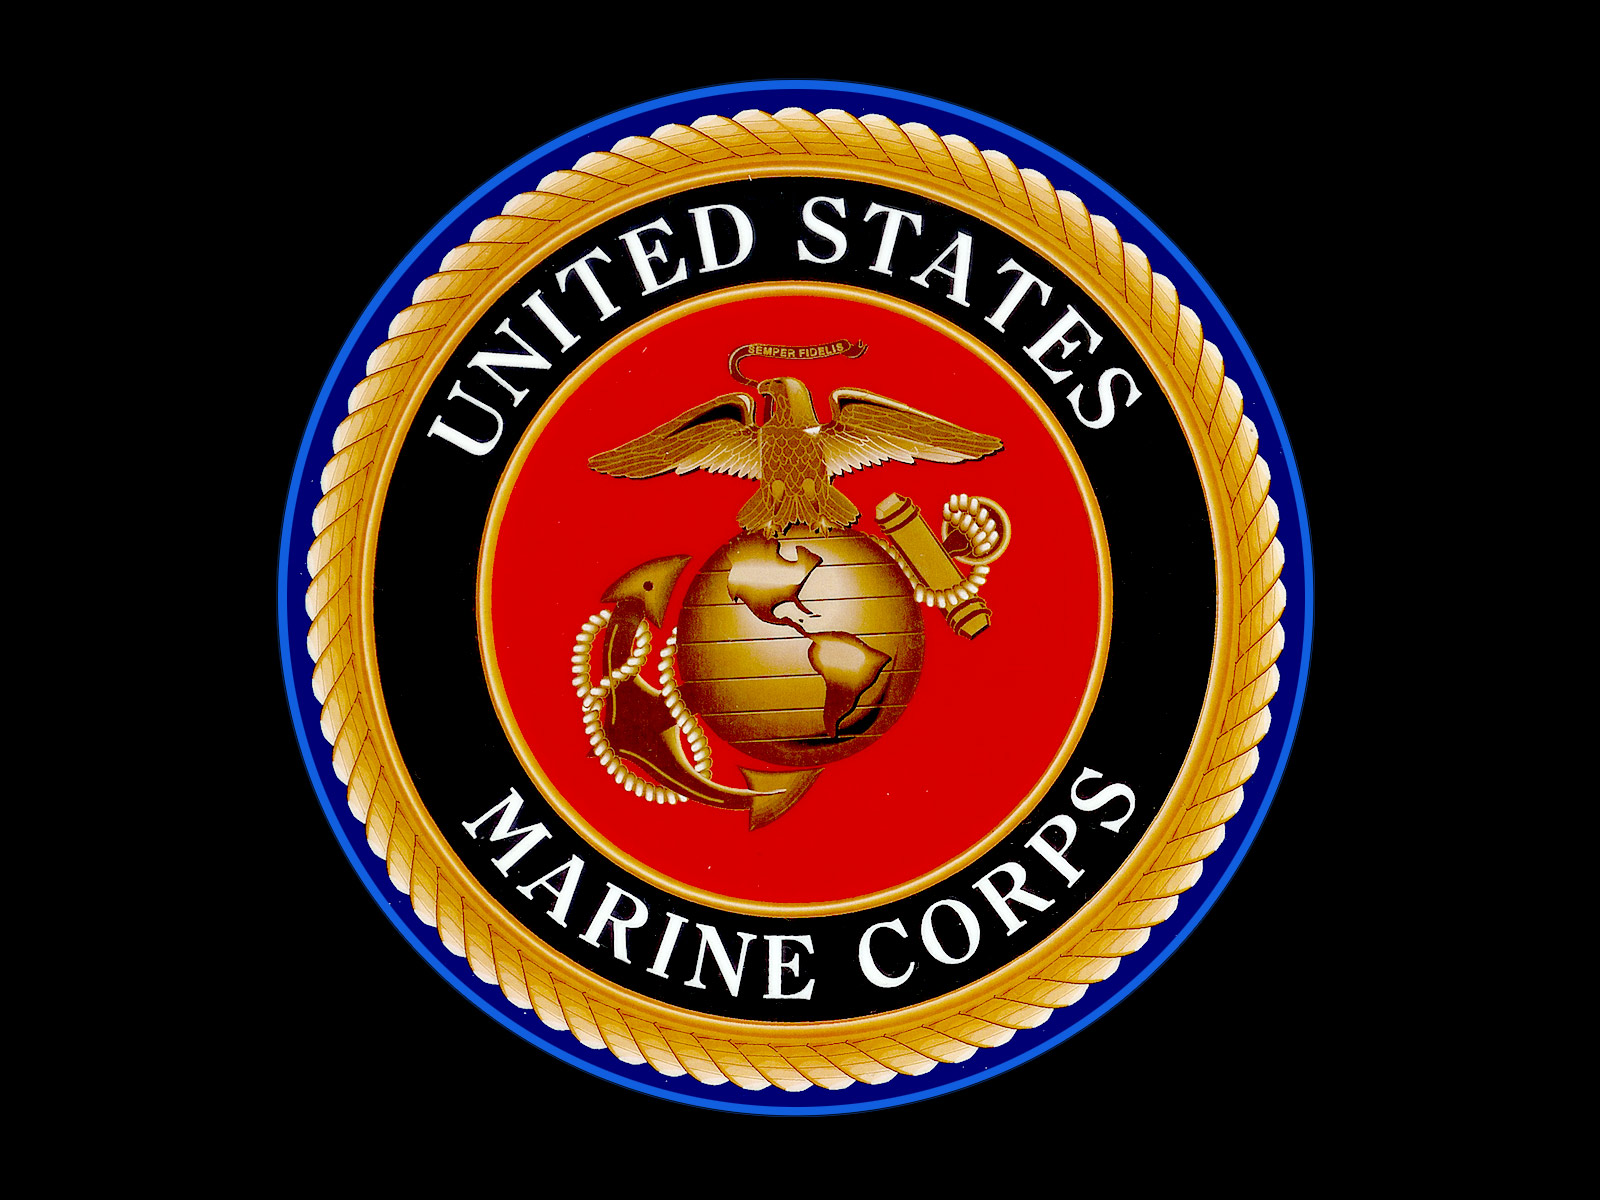 an introduction to the united states marine corp United states marine corps, marine corps combat development  introduction in1964 the mekong  by 1964, united states army and marine corps presence insouth vietnamwas increasing their assistance to the government ofsouthvietnam while progress was made in the areas north ofsaigon, the mekong deltaremained virtually untouched by.